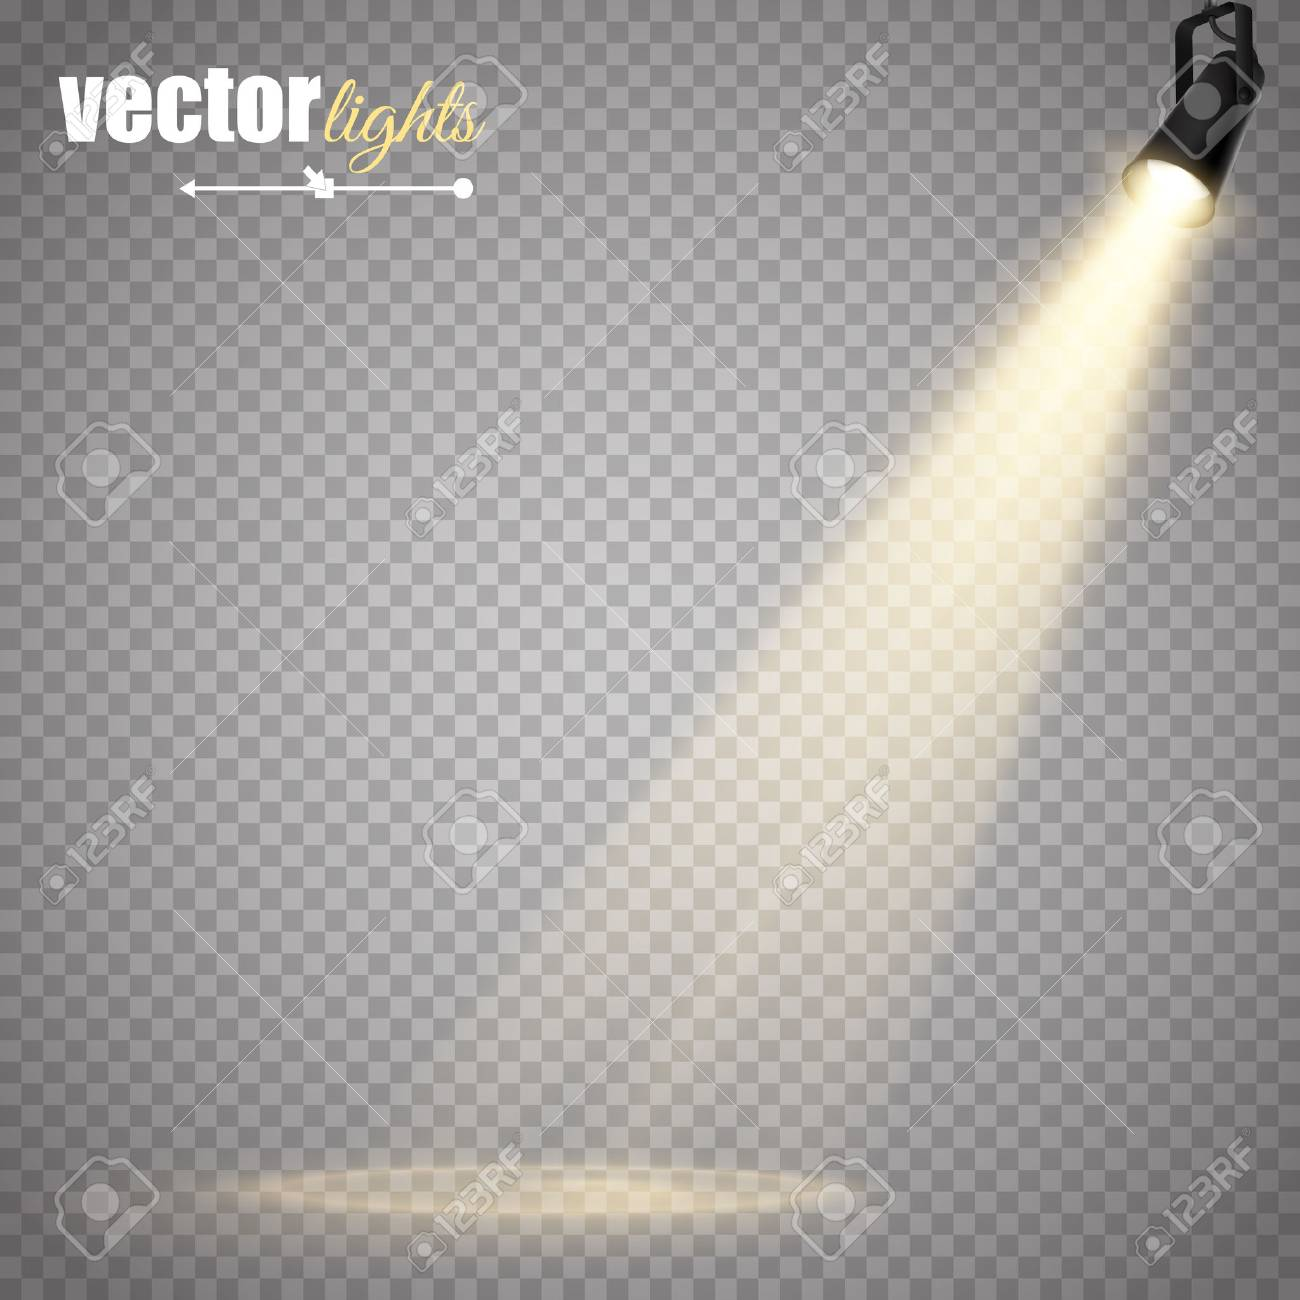 Abstract Vector Spotlight isolated on transparent background. Light Effects. - 55754203